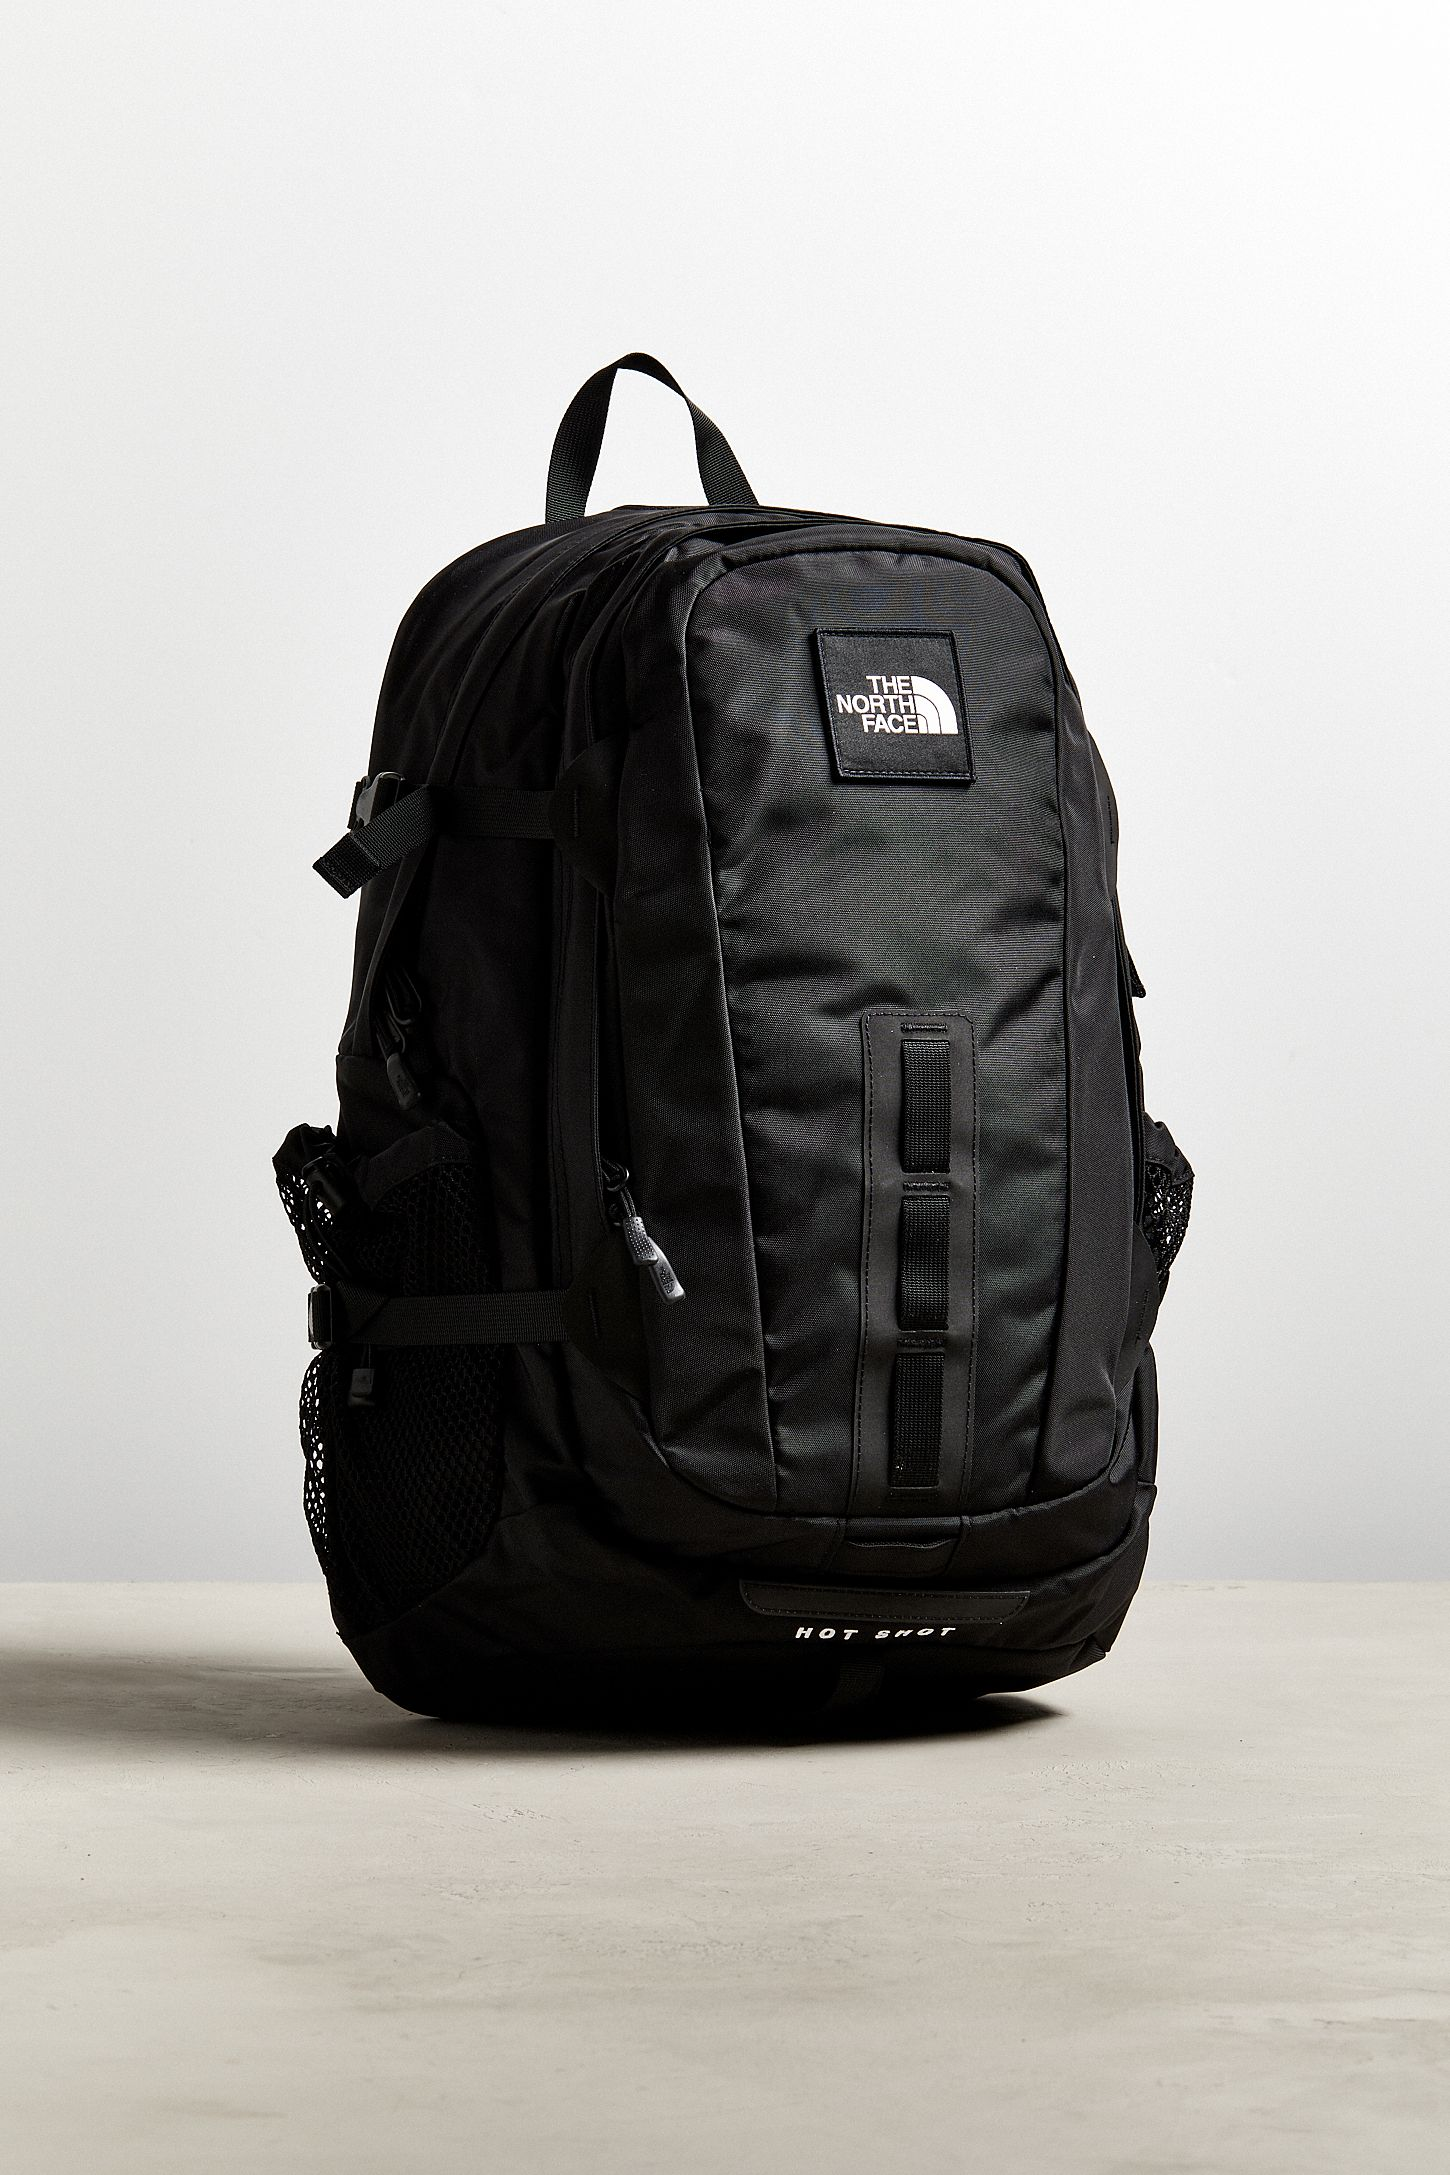 a3197827a The North Face Hot Shot Backpack